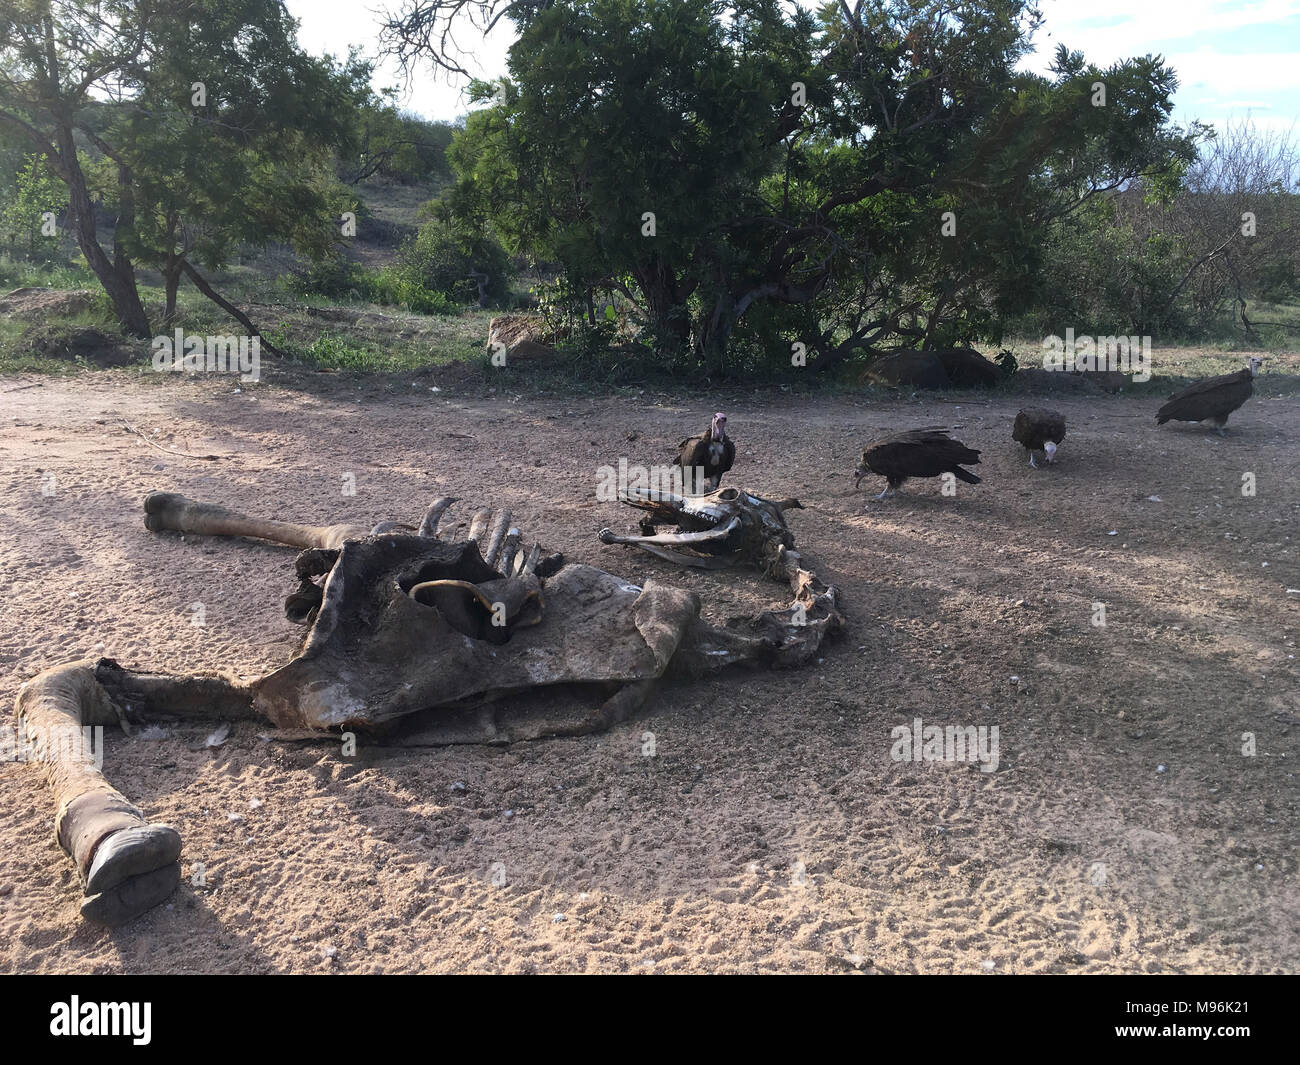 South Africa is a popular tourist destination for its blend of true African and European experiences. Kruger Park giraffe skeleton and vultures. - Stock Image